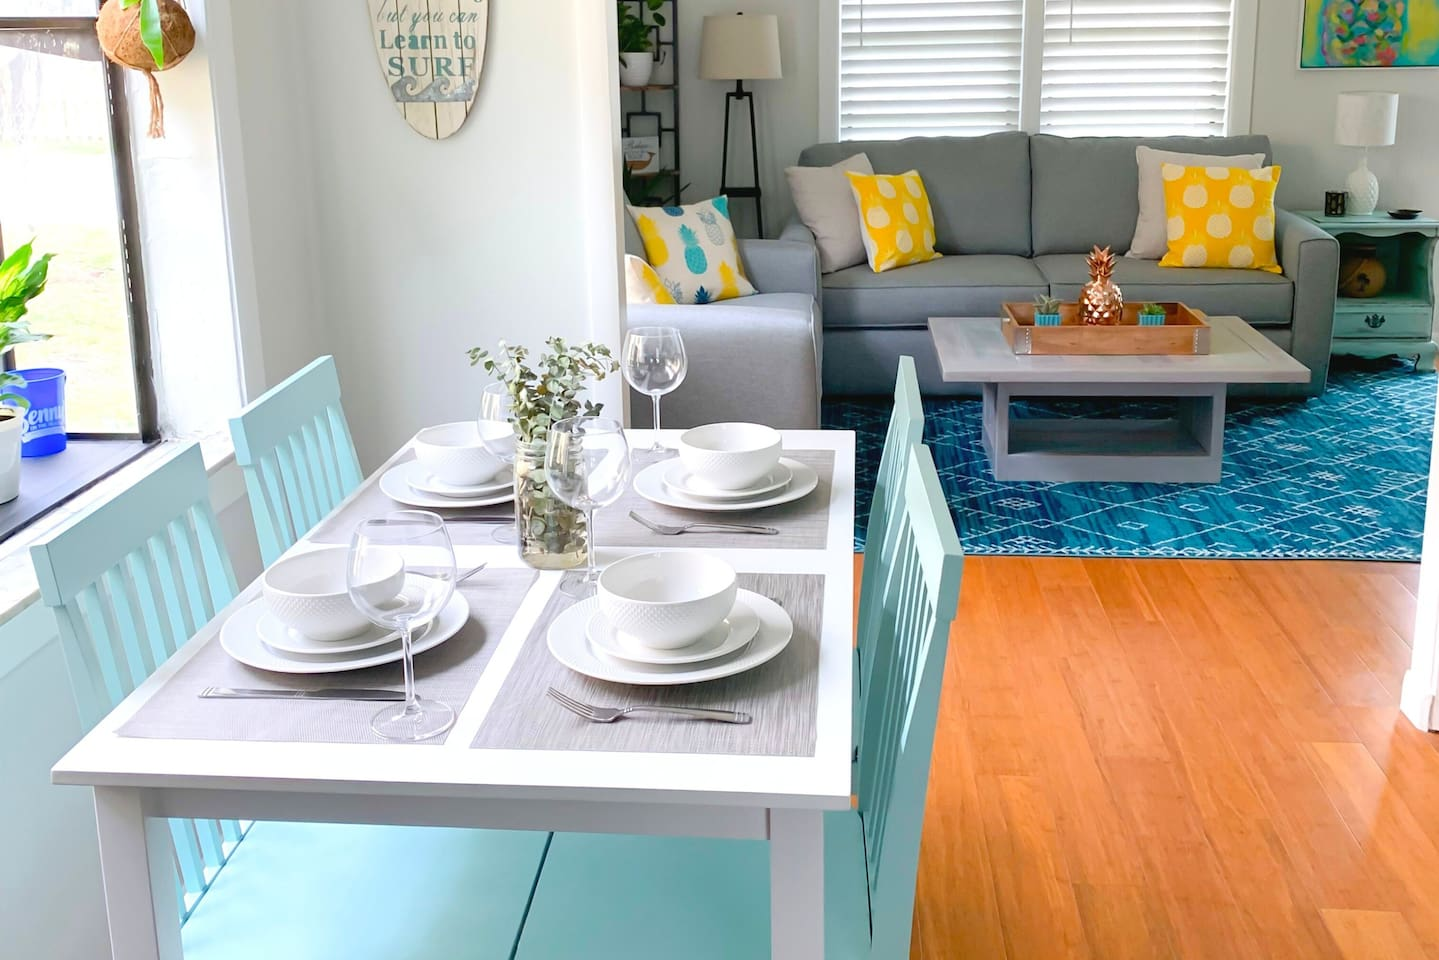 Dining room table in the eat in kitchen.  Open to the living area.